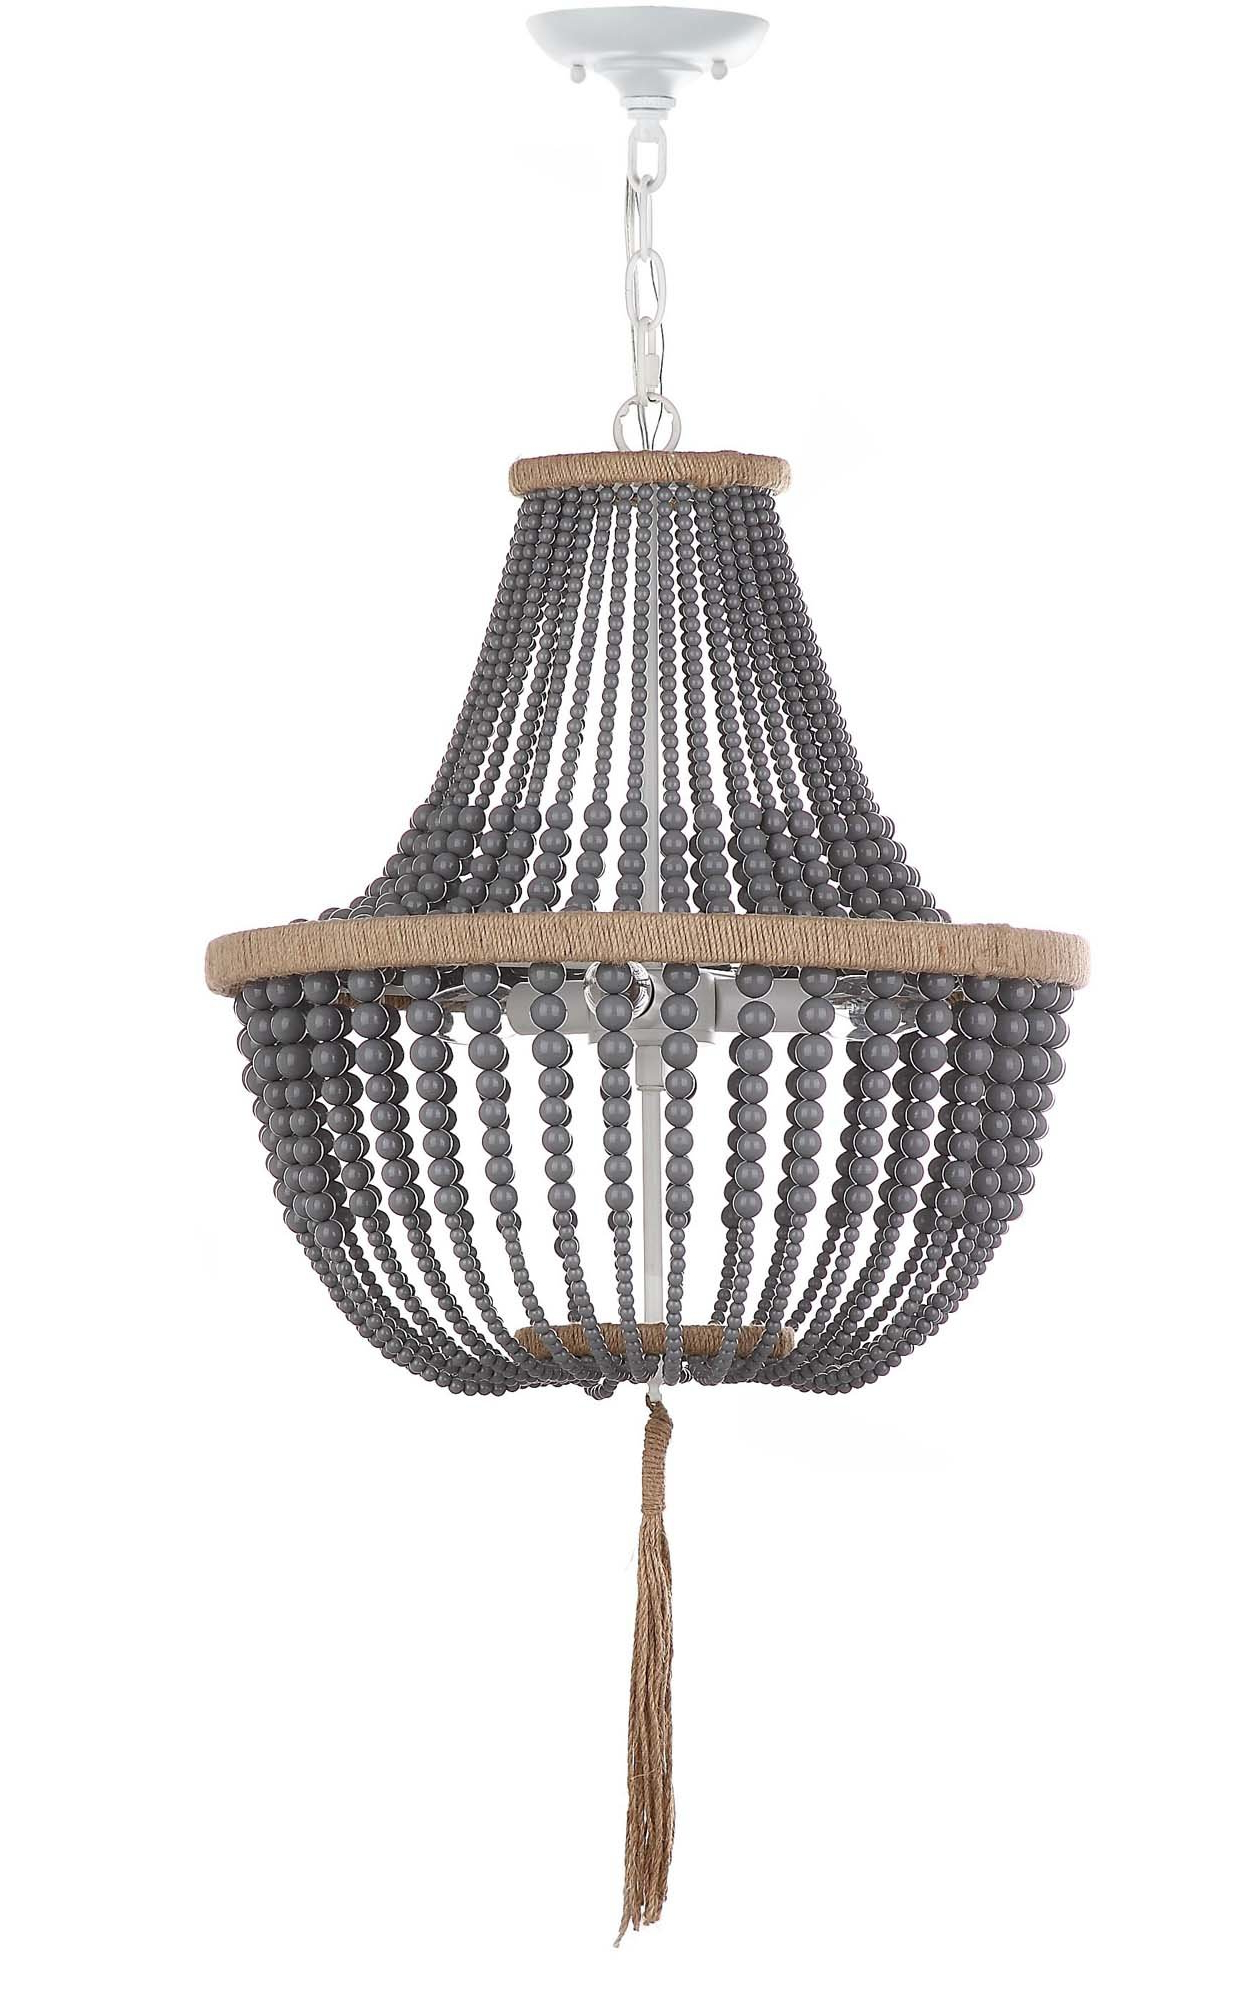 2020 Lyon 3-Light Unique / Statement Chandelier within Nehemiah 3-Light Empire Chandeliers